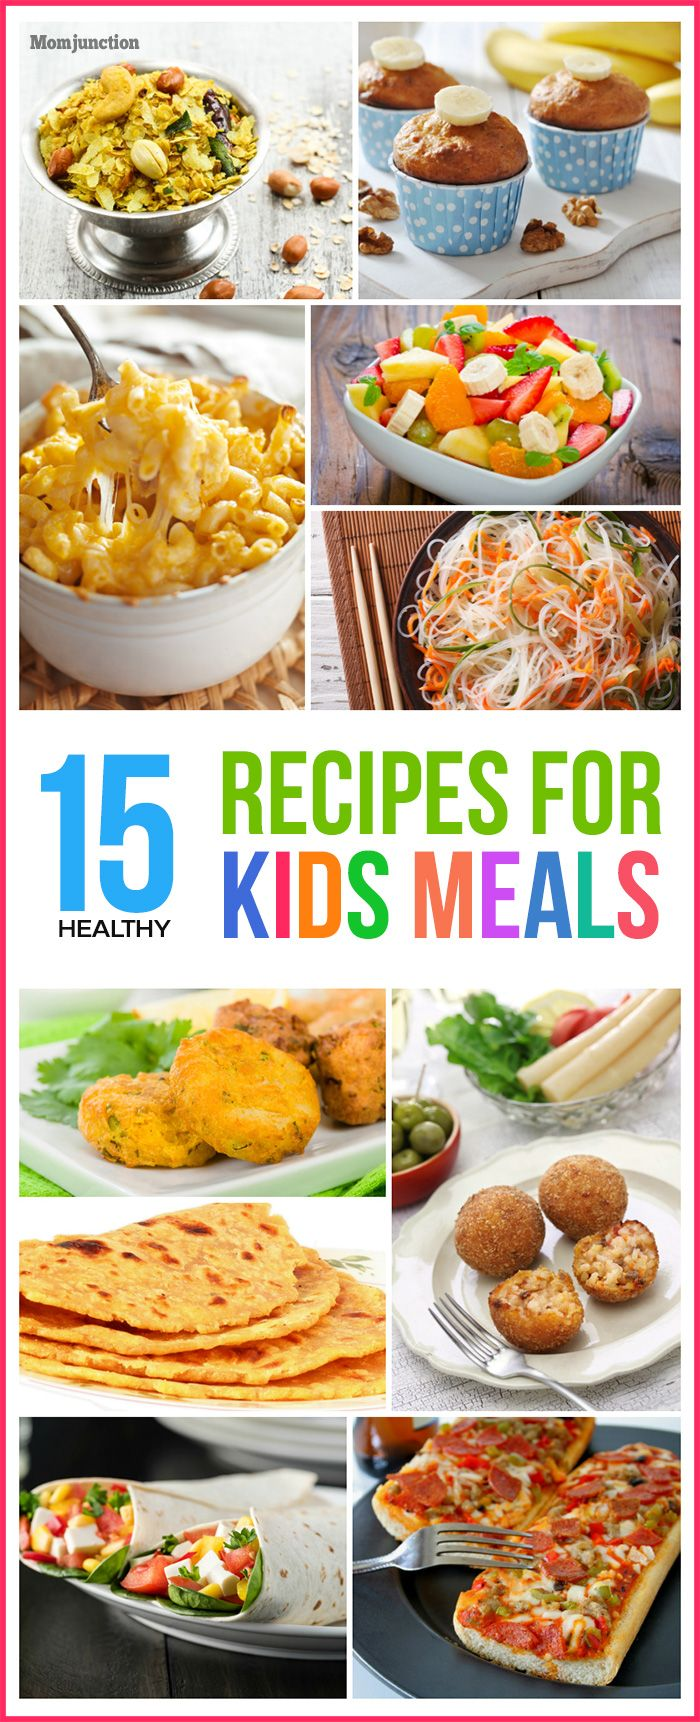 Top 15 healthy recipes for kids meals almuerzos para nio looking for healthy recipes for kids check out forumfinder